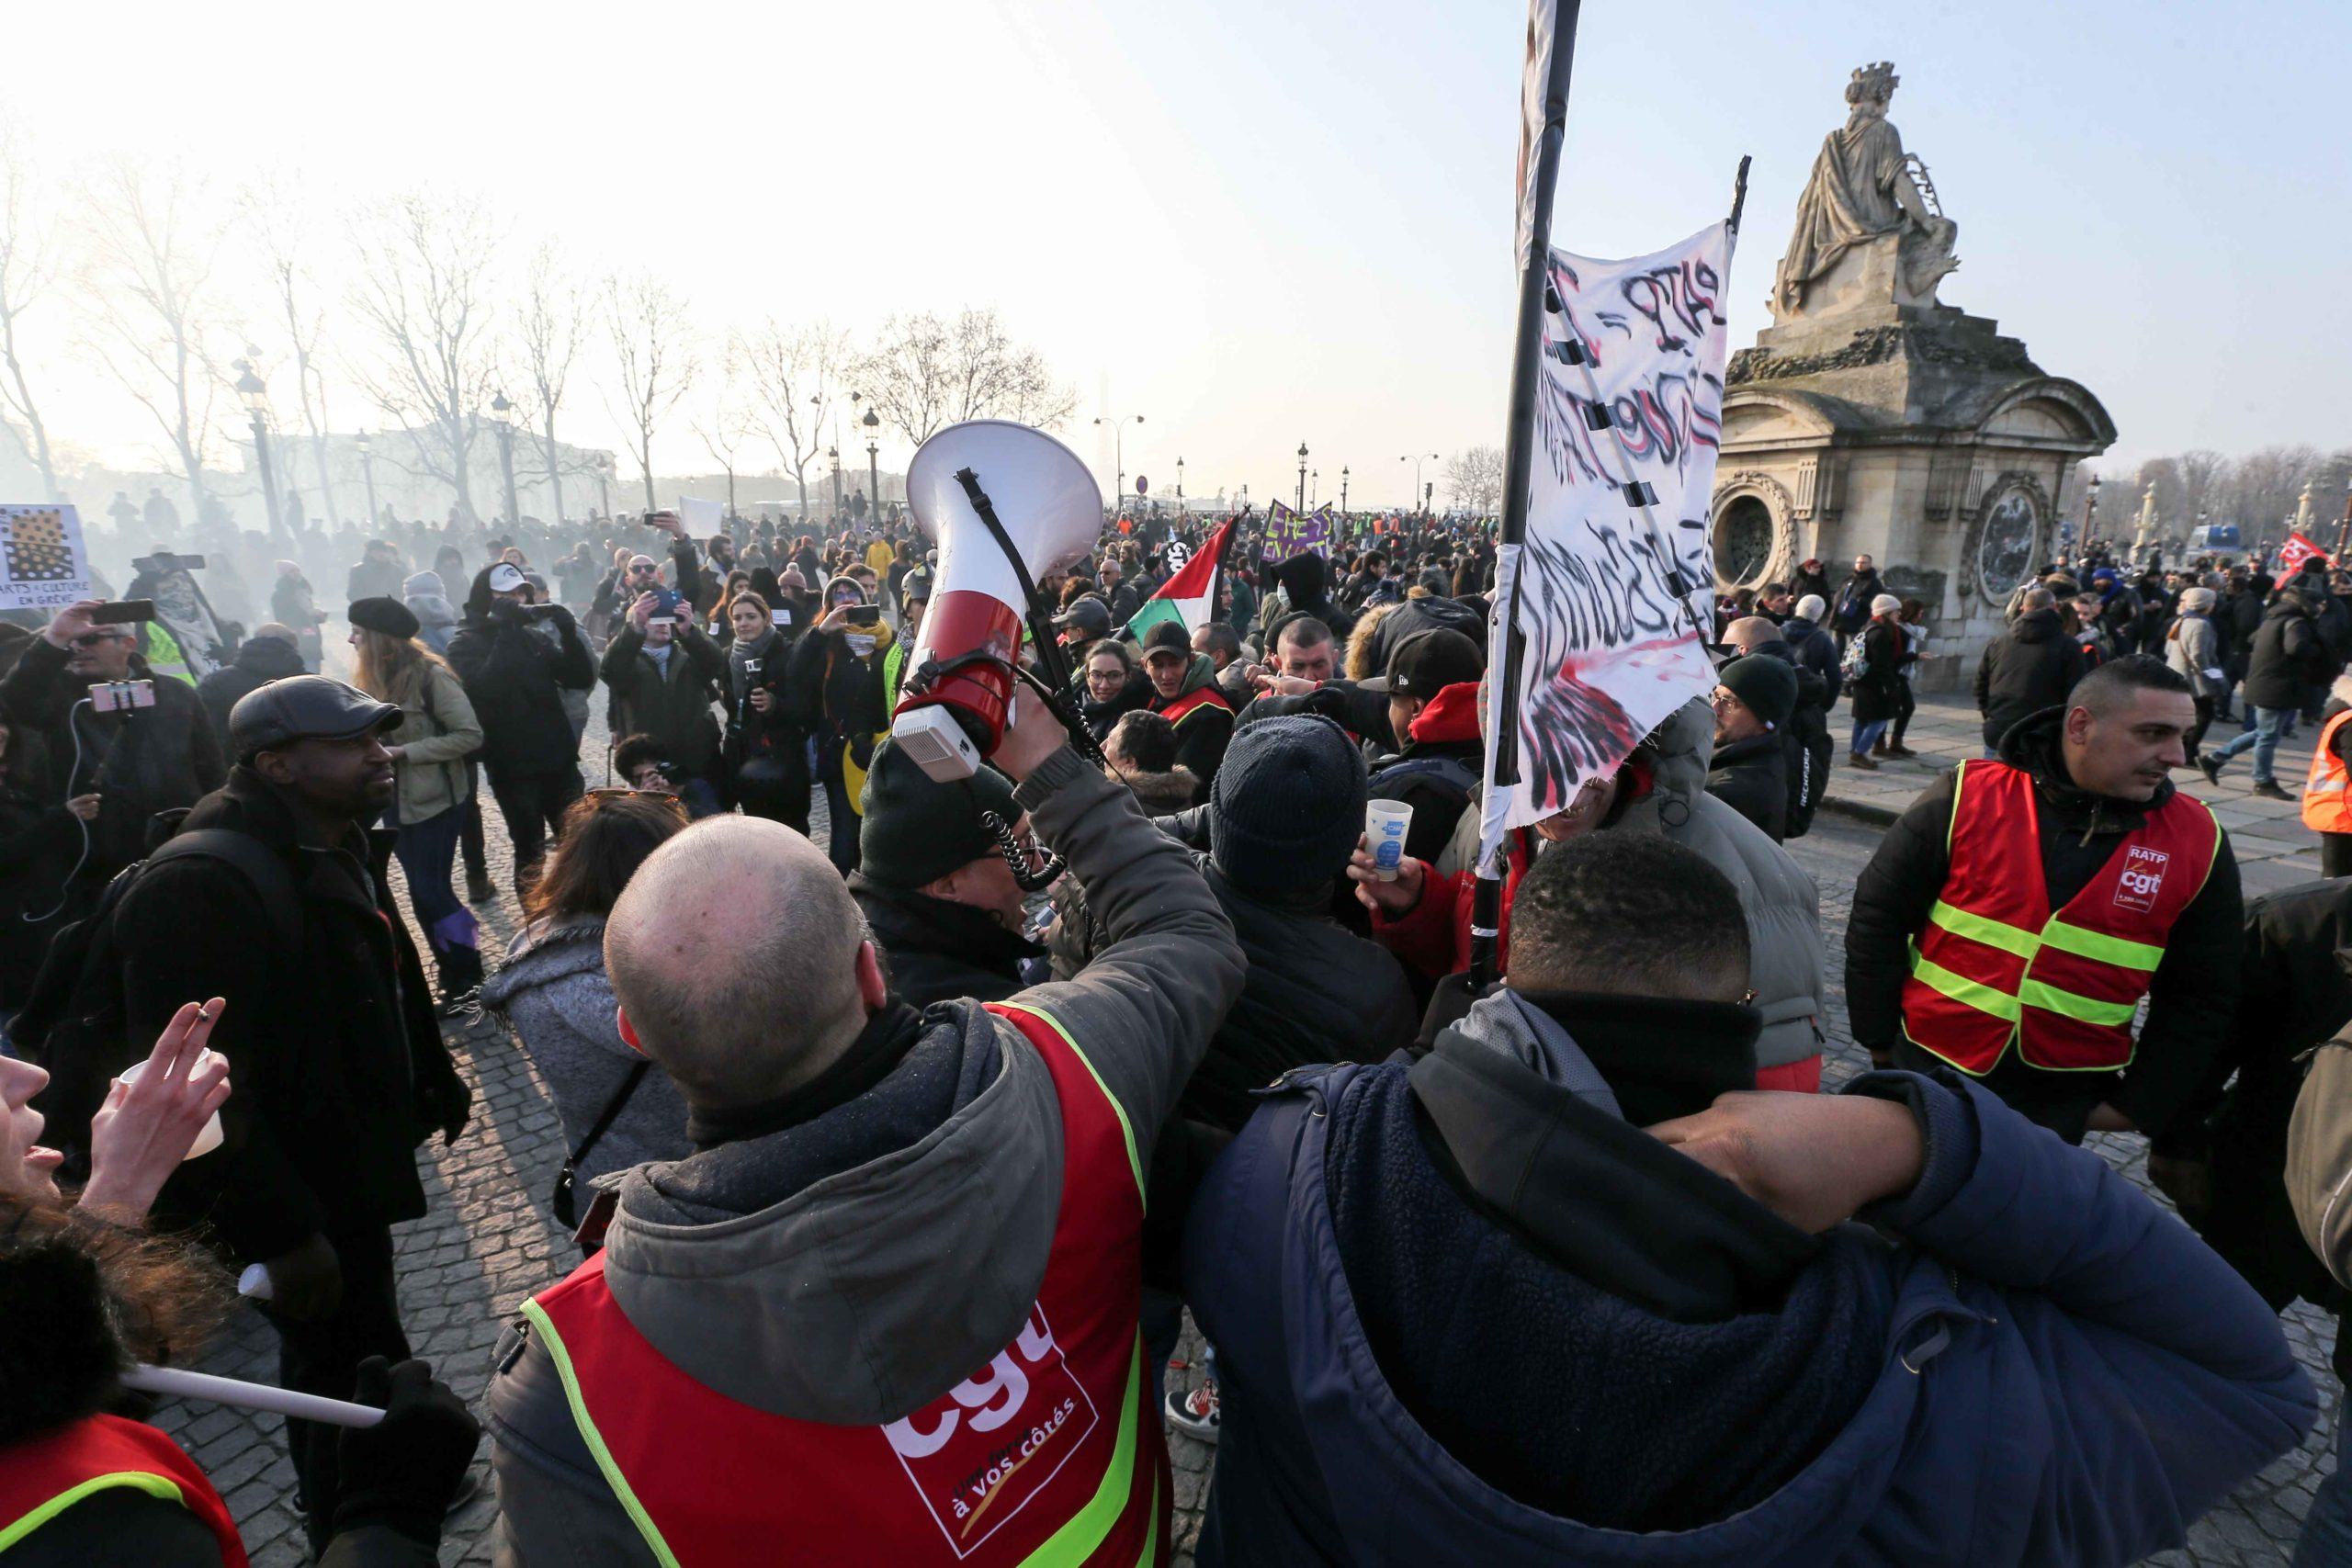 Protestors gather in Place de la Concorde during a demonstration in Paris on January 24, 2020 against the government pensions reform, which will be officially unveiled after weeks of strikes by unions warning that millions of people will have to work longe